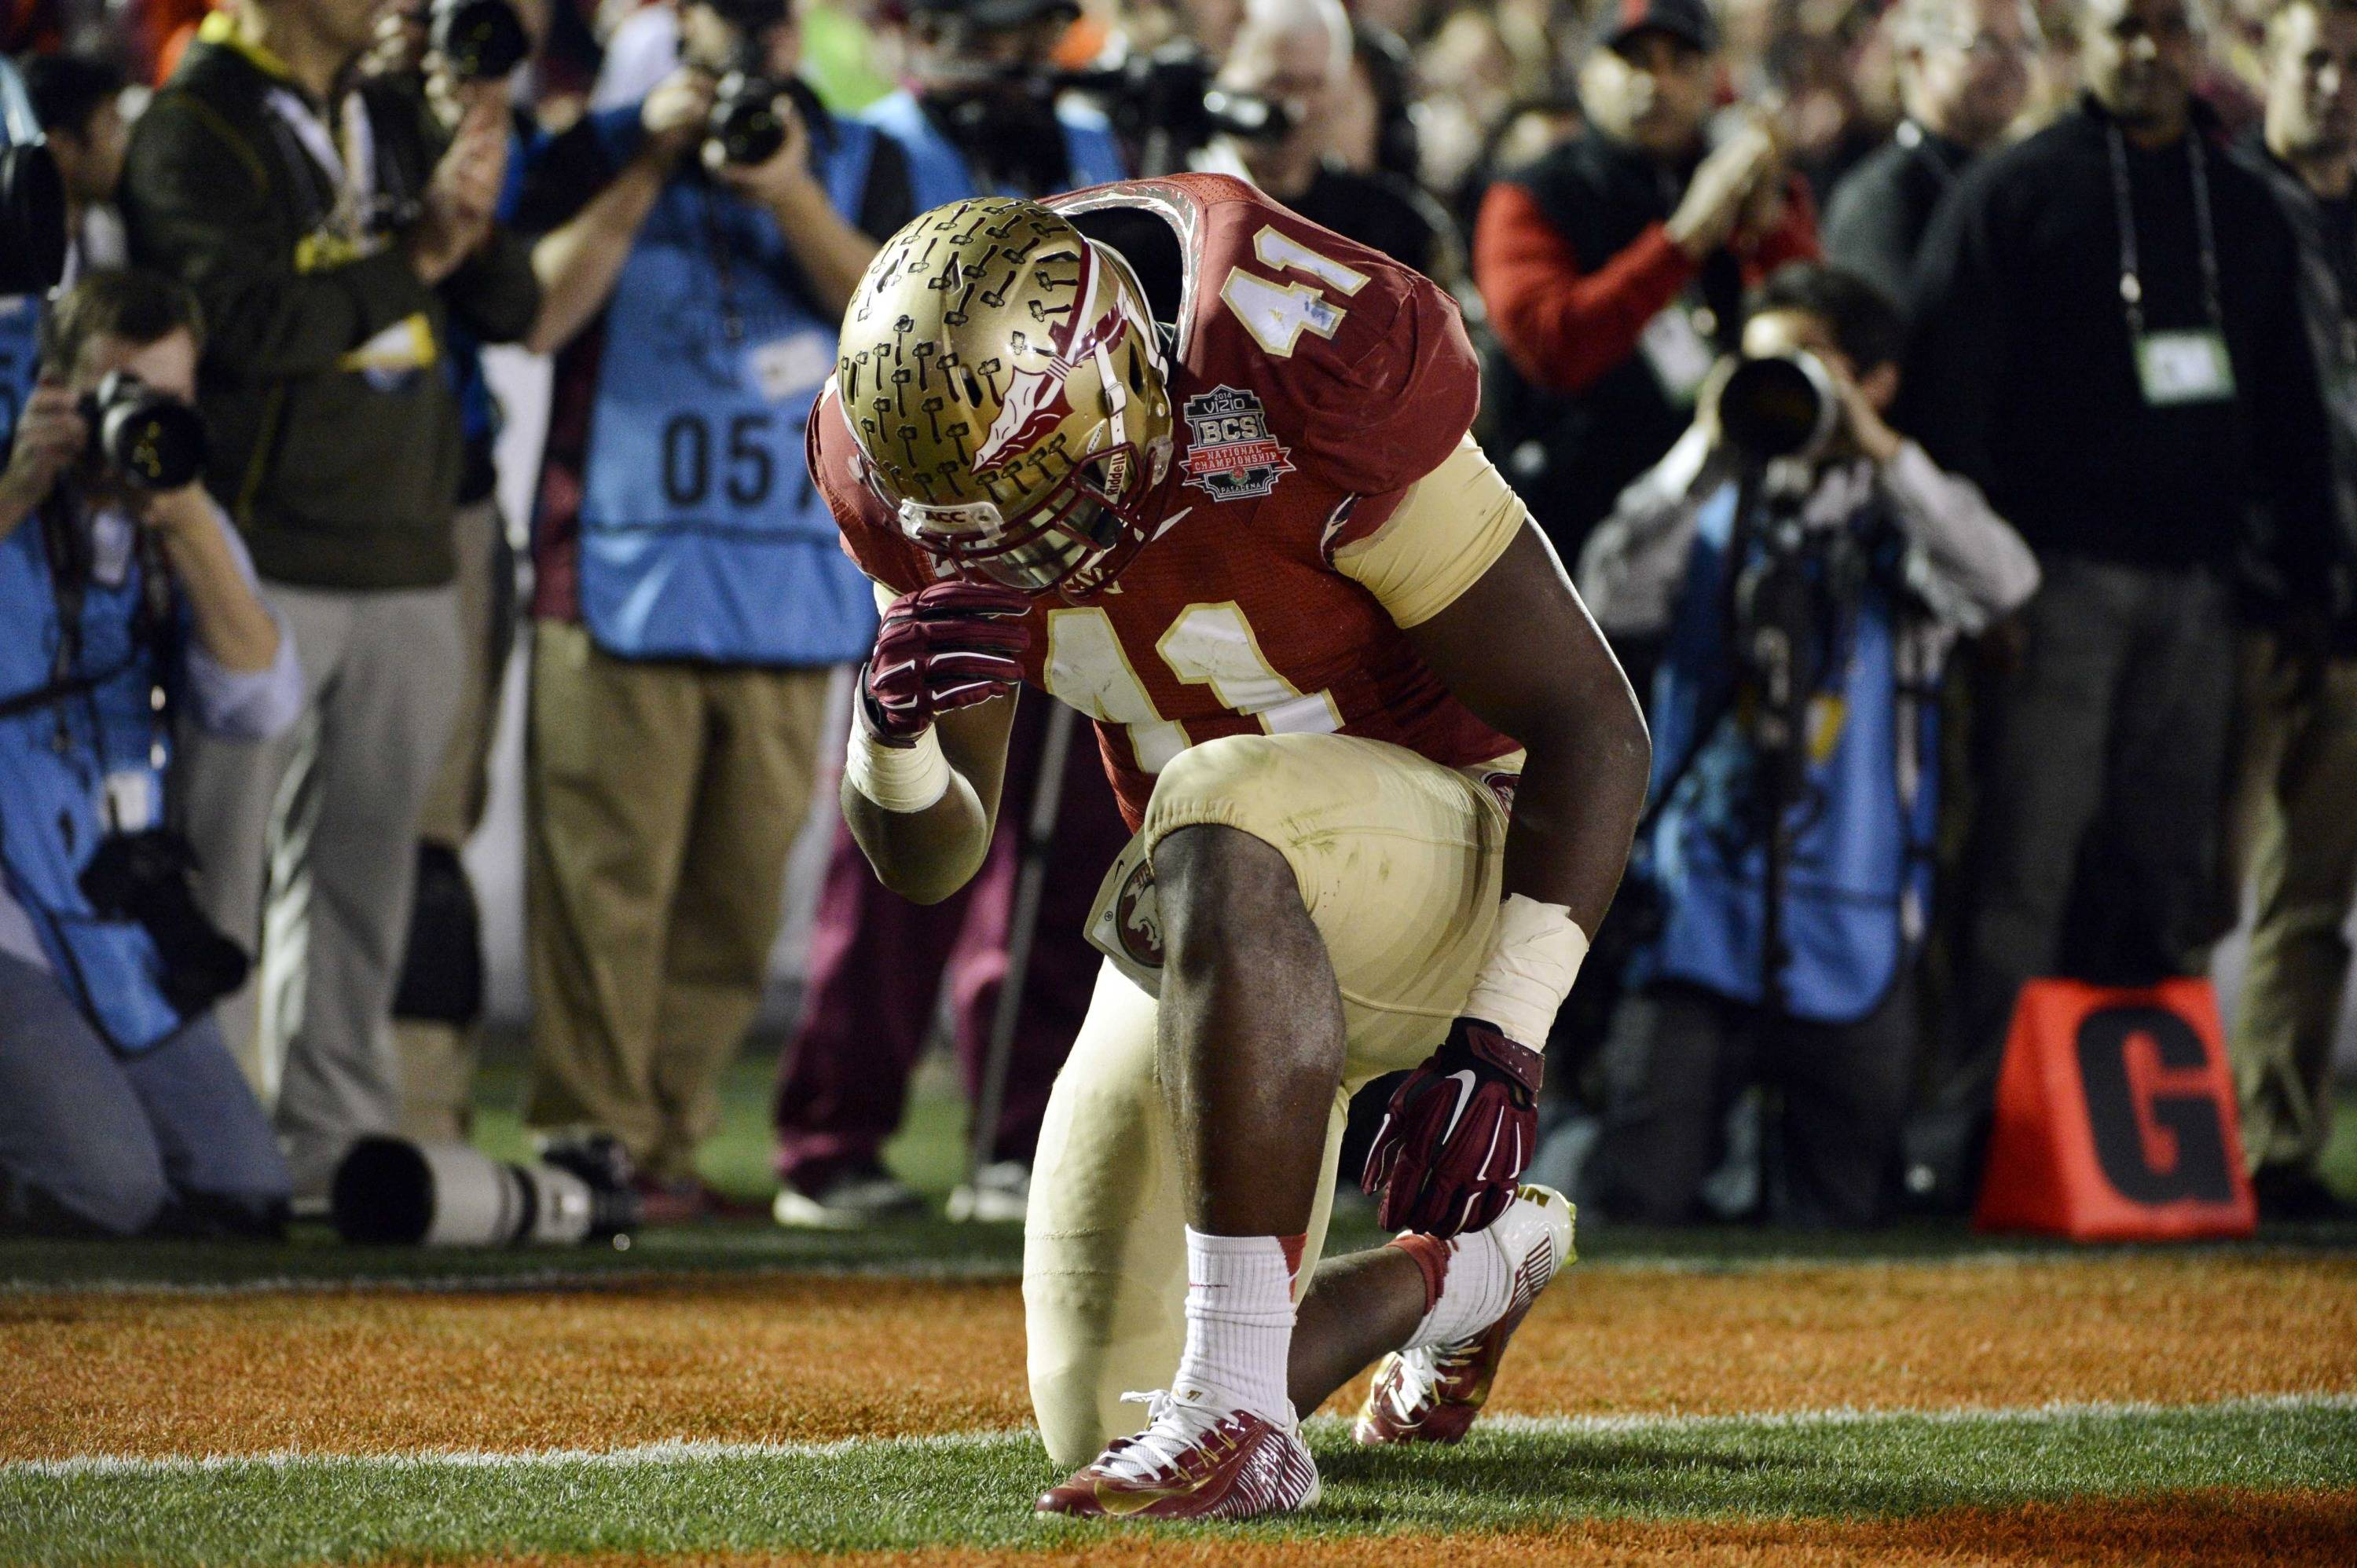 Jan 6, 2014; Pasadena, CA, USA; Florida State Seminoles fullback Chad Abram (41) reacts after scoring a touchdown against the Auburn Tigers during the second half of the 2014 BCS National Championship game at the Rose Bowl.  Mandatory Credit: Robert Hanashiro-USA TODAY Sports